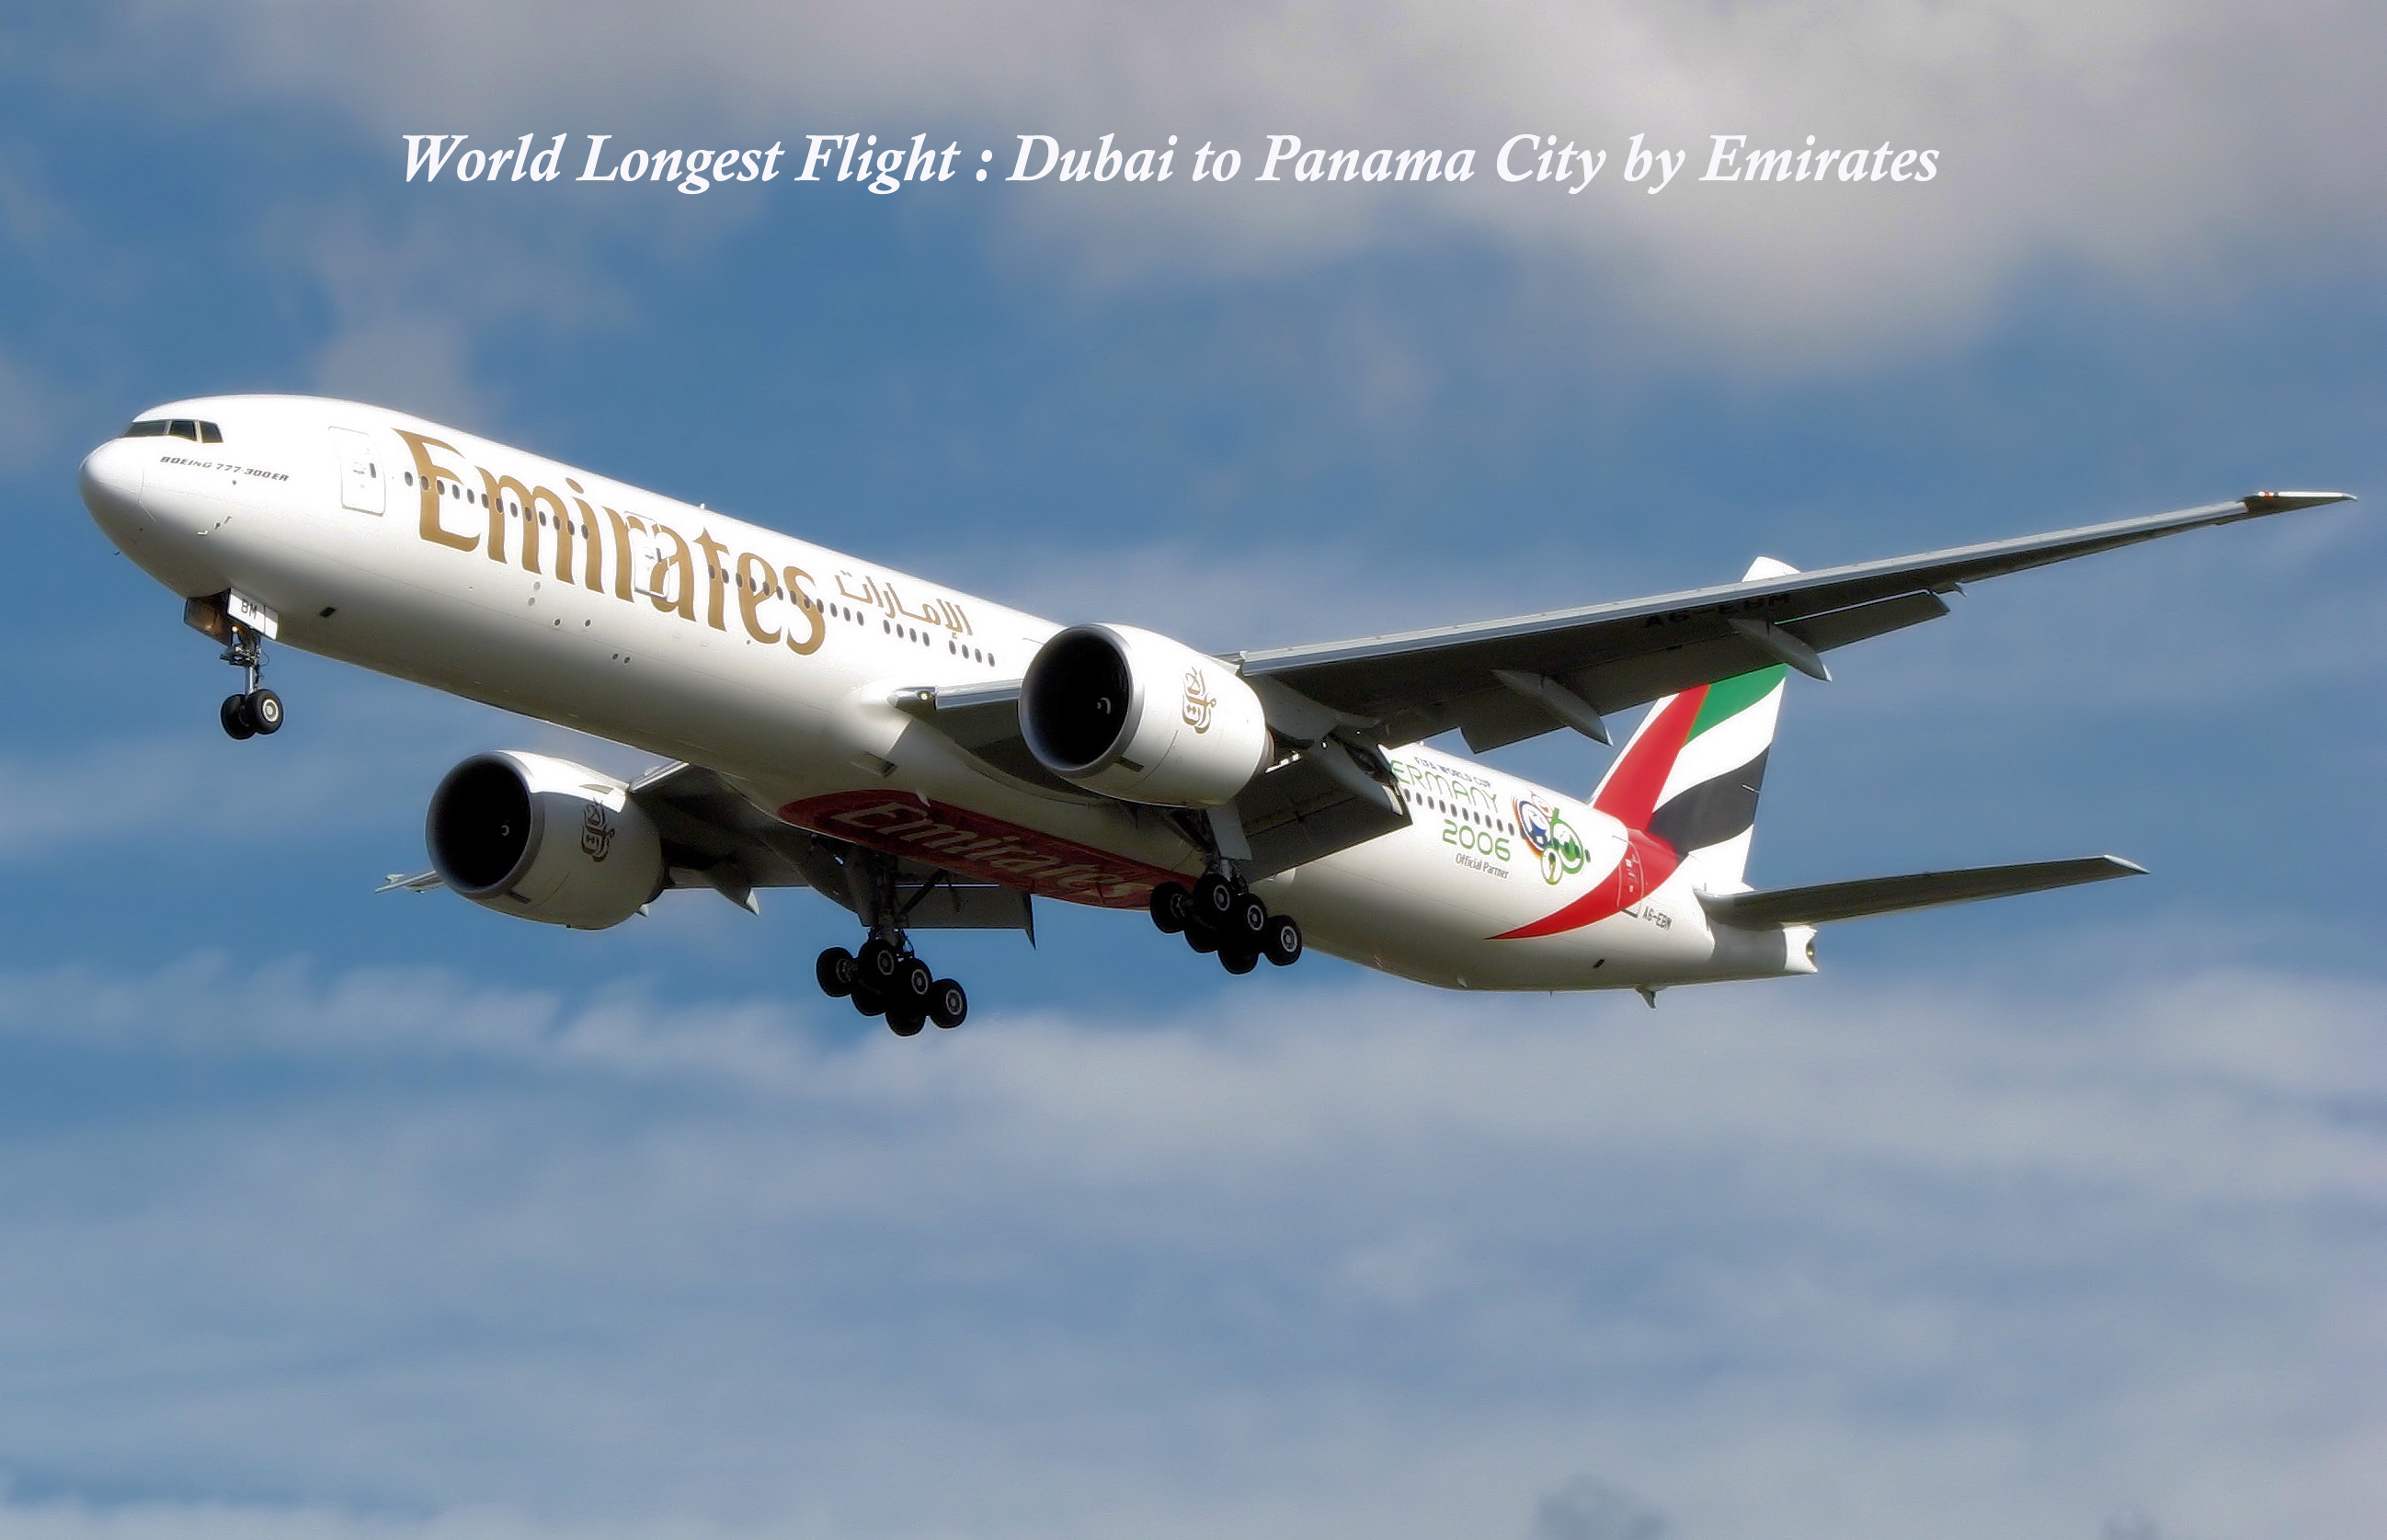 World's Longest Flight by Emirates